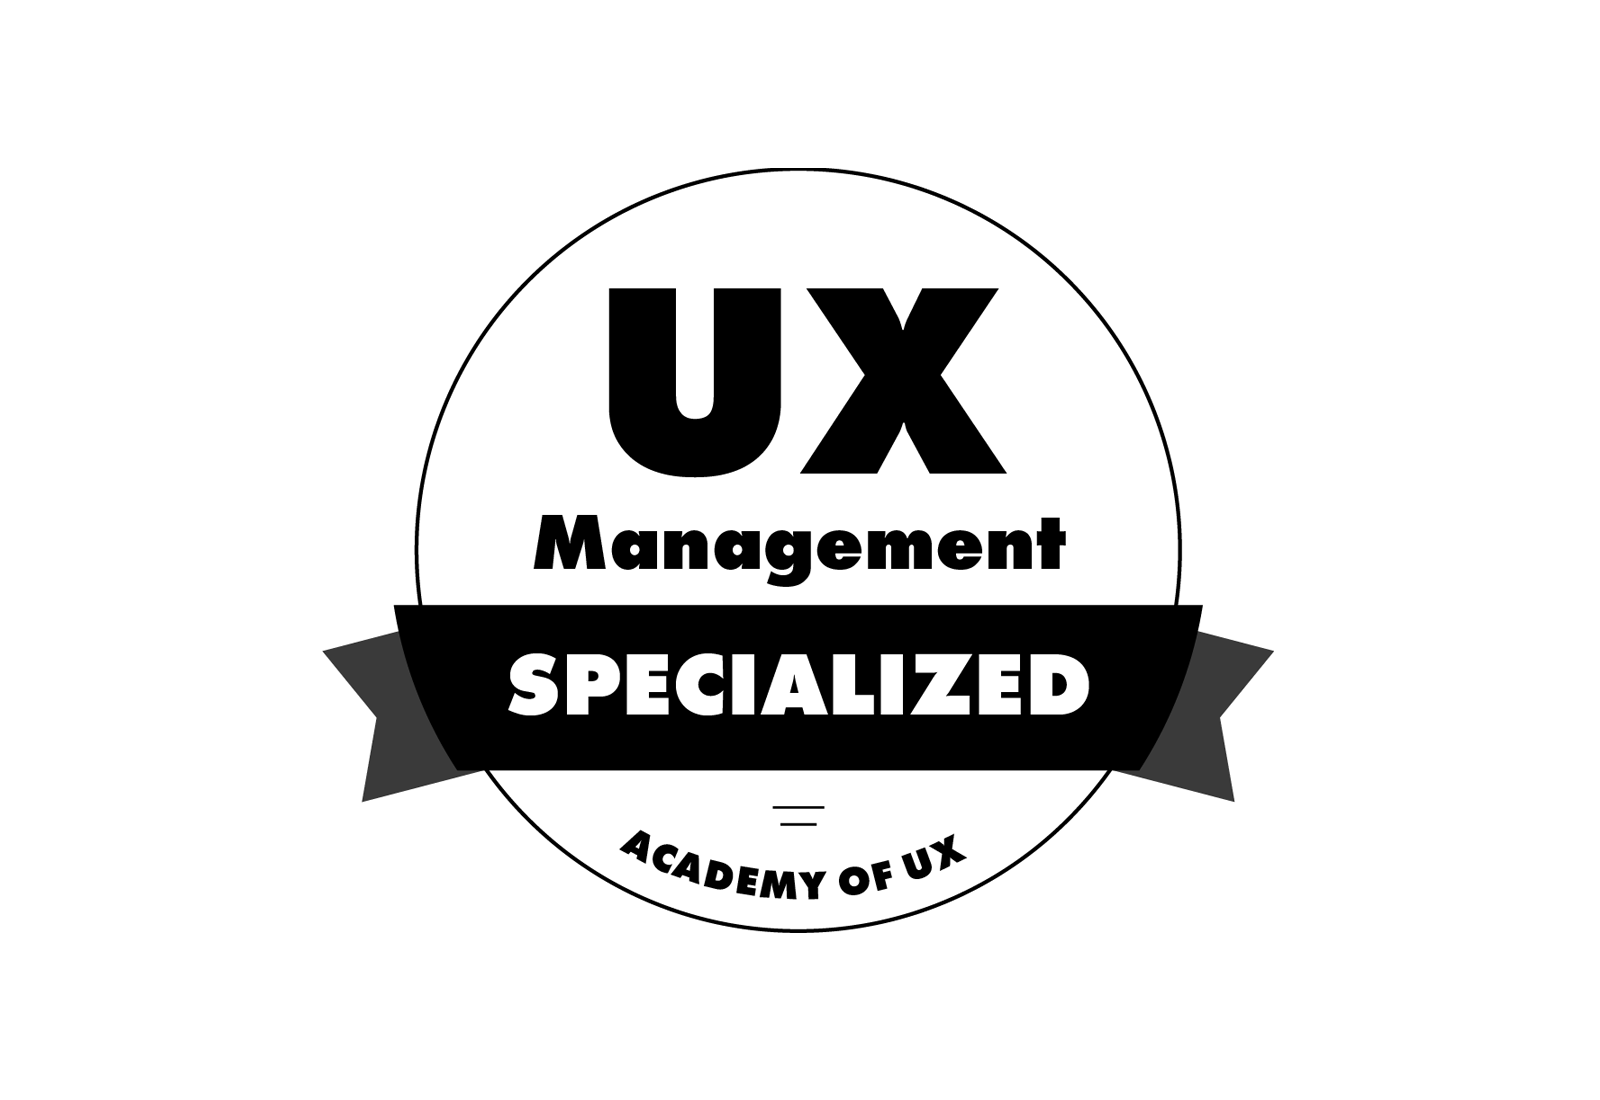 UX-Management-Specialized-AcademyOfUX